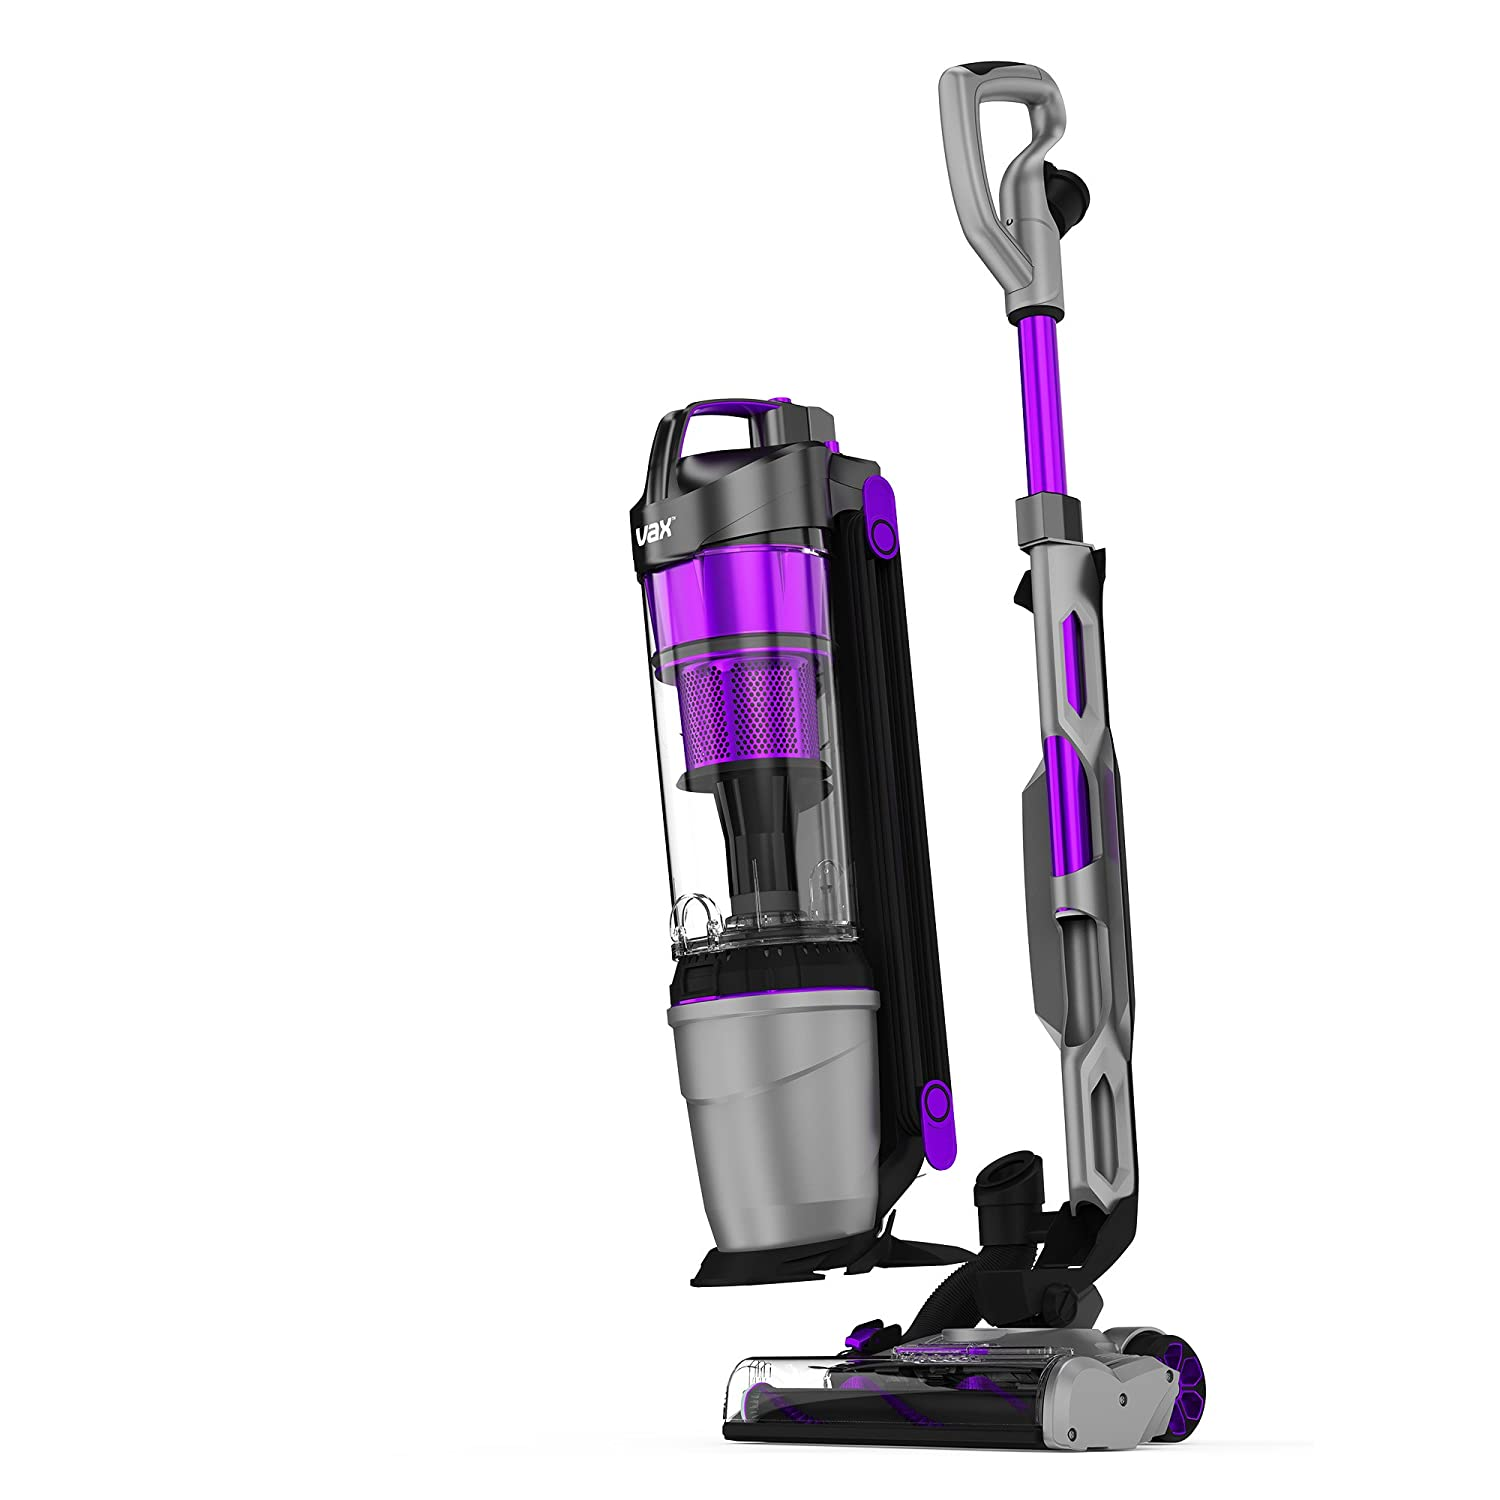 Vax UCUESHV1 Air Lift Steerable Pet Pro Vacuum Cleaner, 1.5 Liters, Black/Purple [Energy Class A]